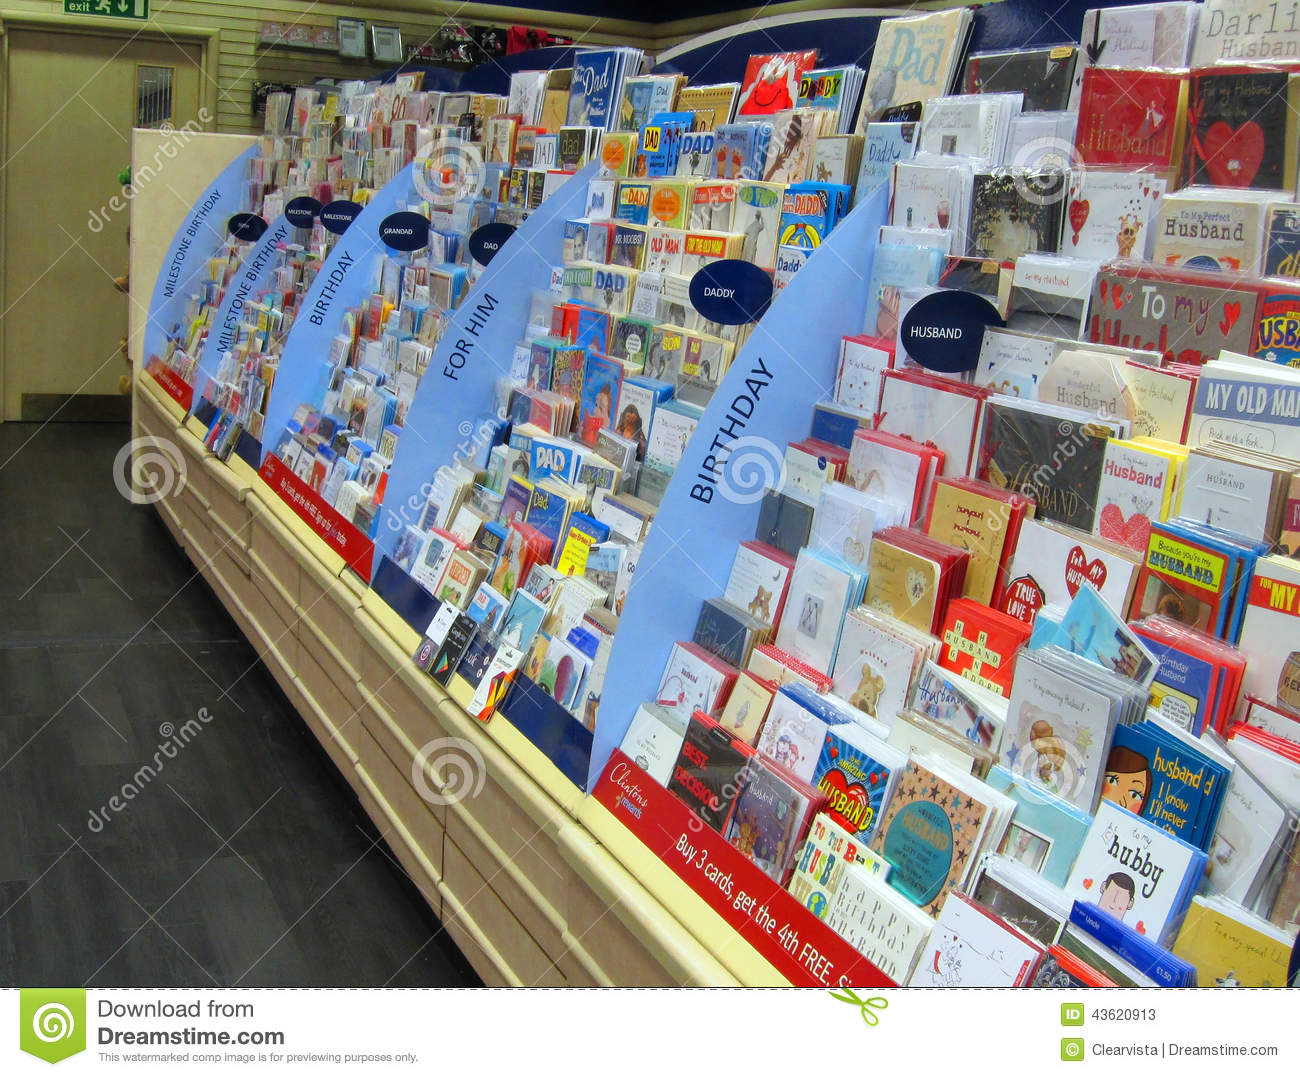 Greetings Cards In A Store